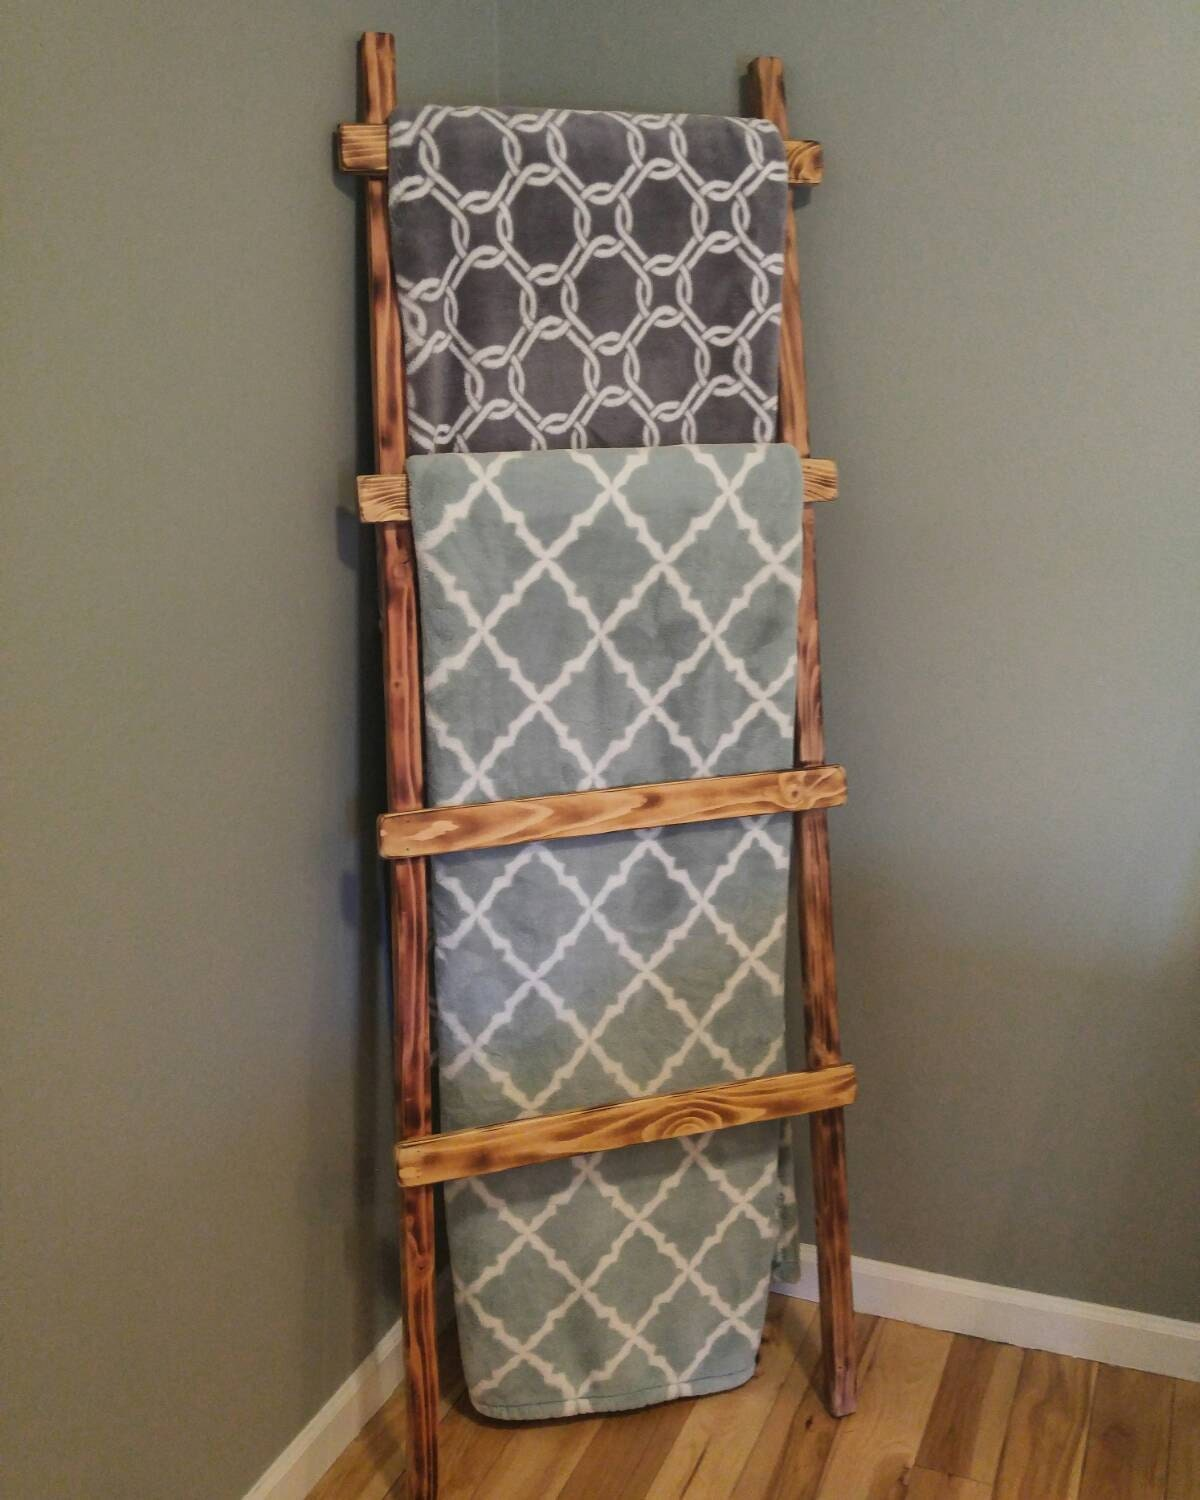 Wood ladderblanket ladder rustic home decor by csquaredcustoms for Decor ladder house